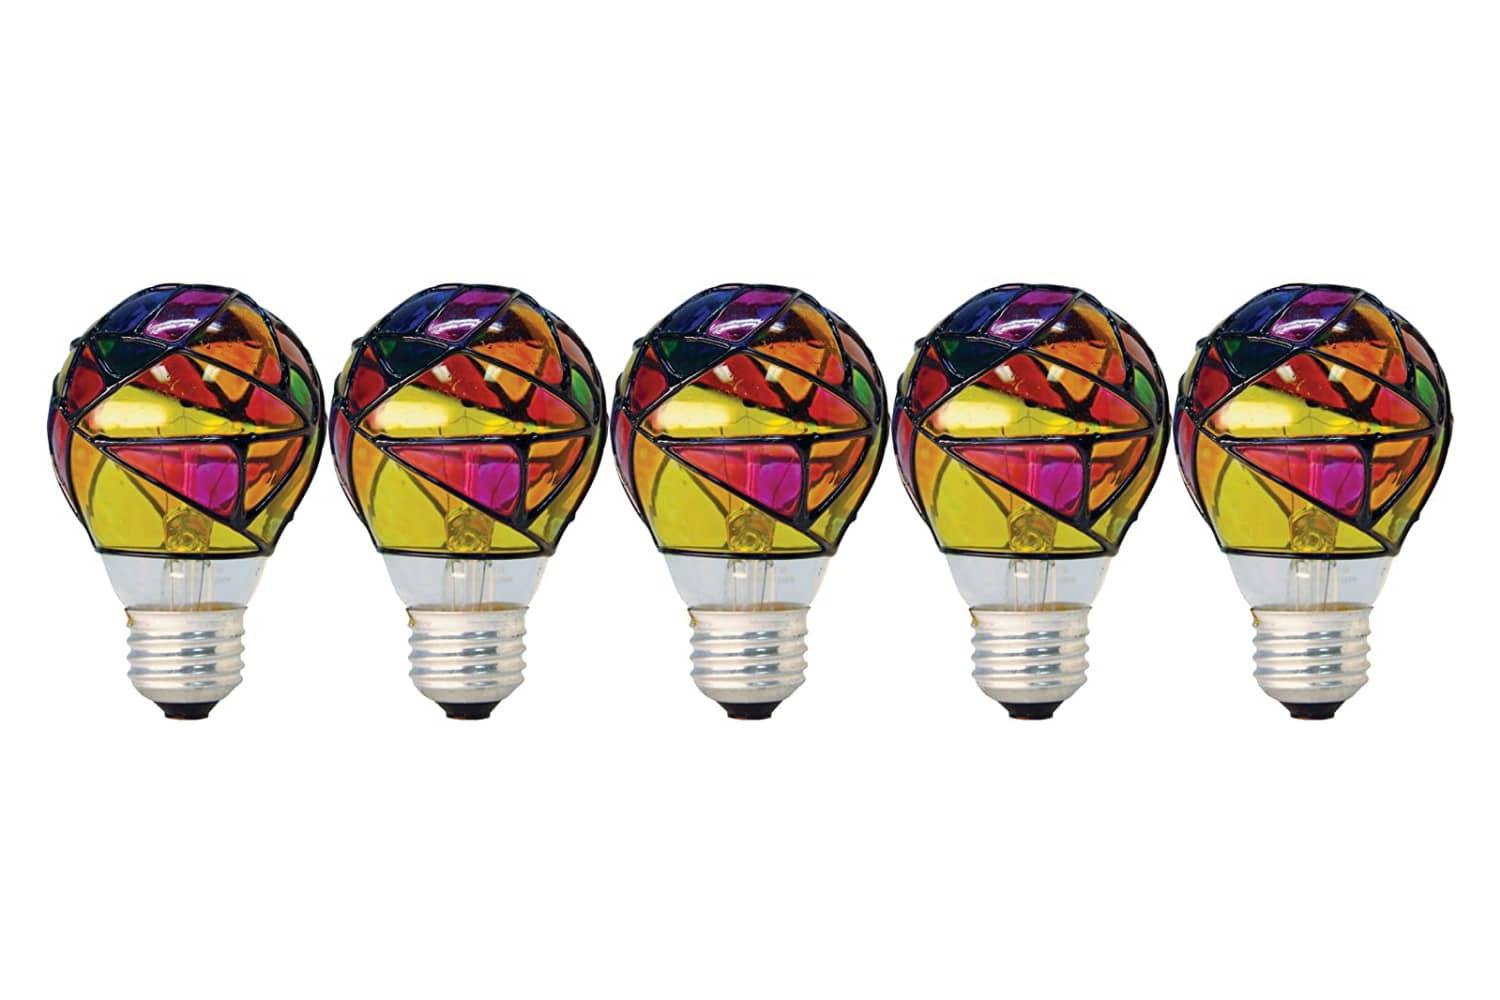 Amazon Reviewers Are Obsessed with These Stained Glass Light Bulbs, and It's Easy to See Why